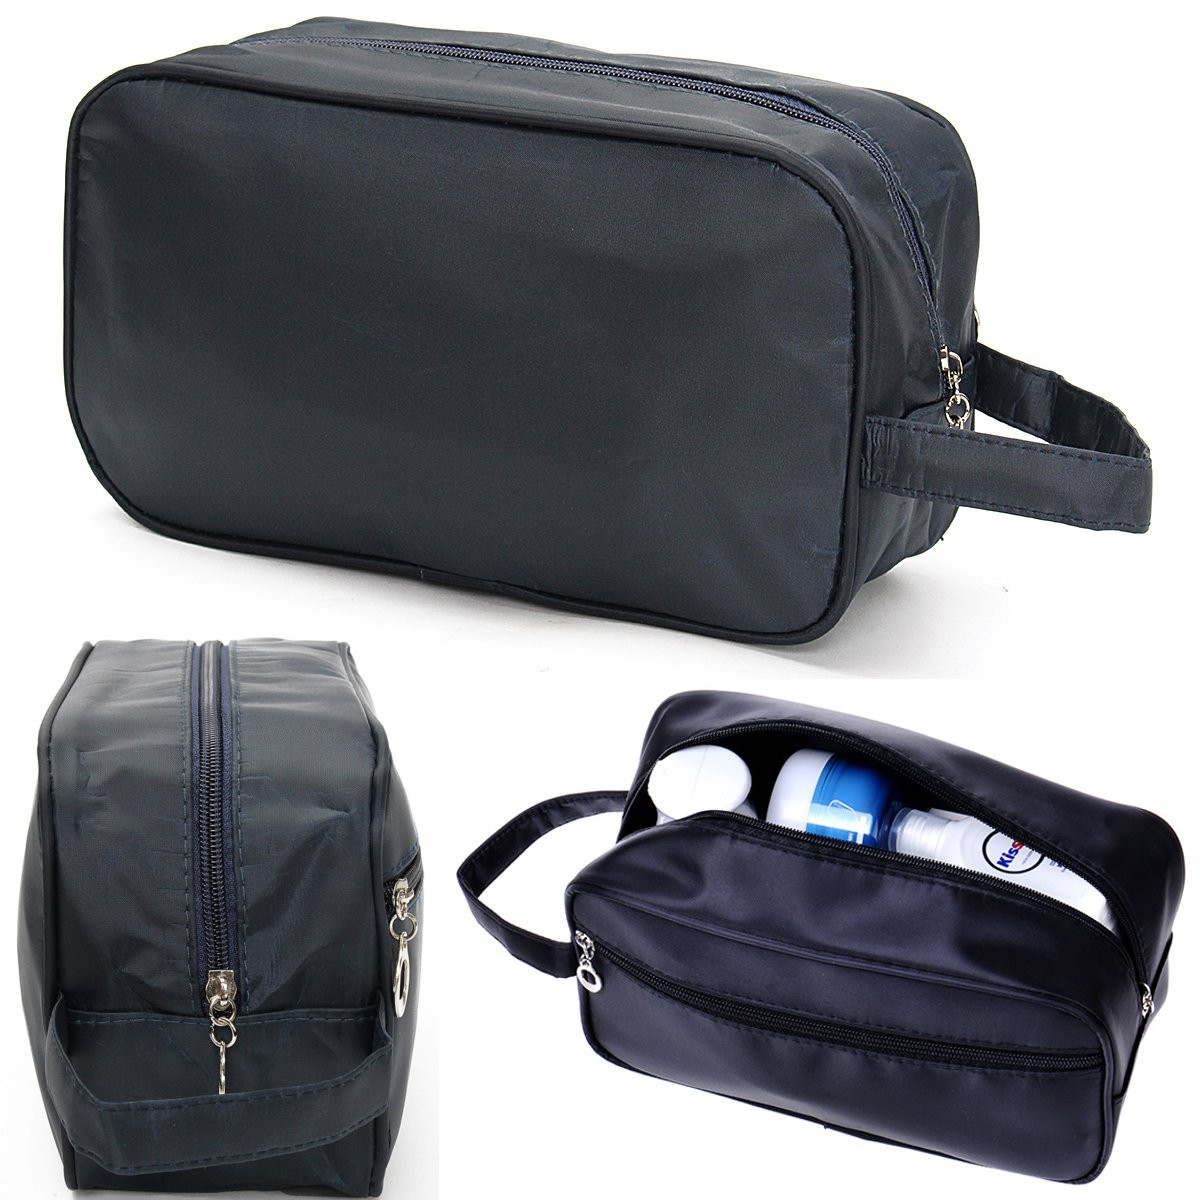 c65b3523ea5a Mens Shaving Kit Travel Bag,Mens Travel Organizer Toiletry Bag Cases, Carry  Tote Waterproof Wash Shower Makeup Organizer Portable Case For Cosmetics,  ...